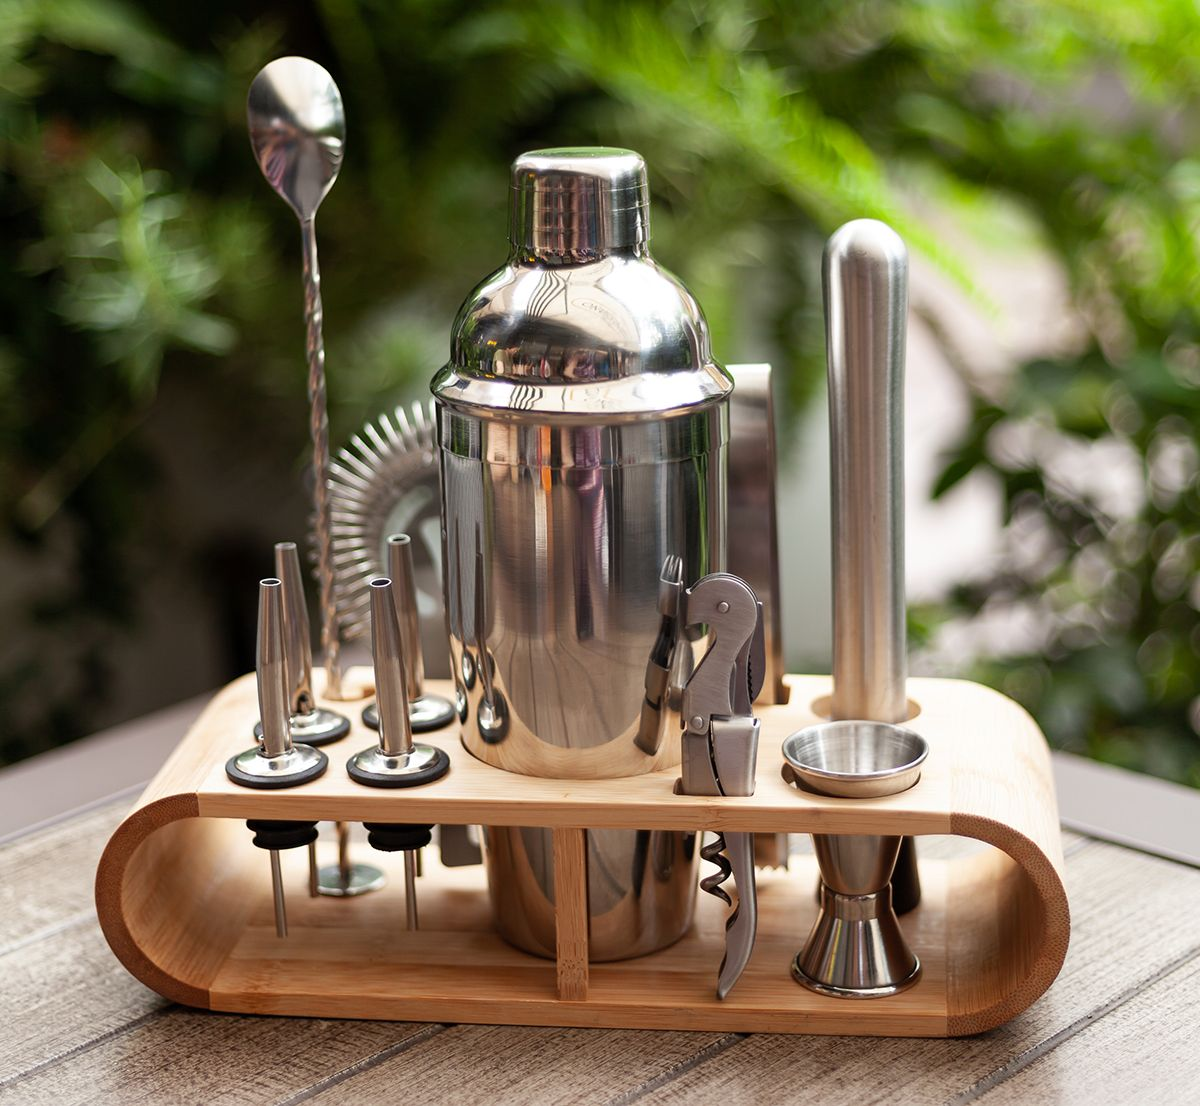 Stainless Steel Cocktail Shaker Set with Bamboo Stand